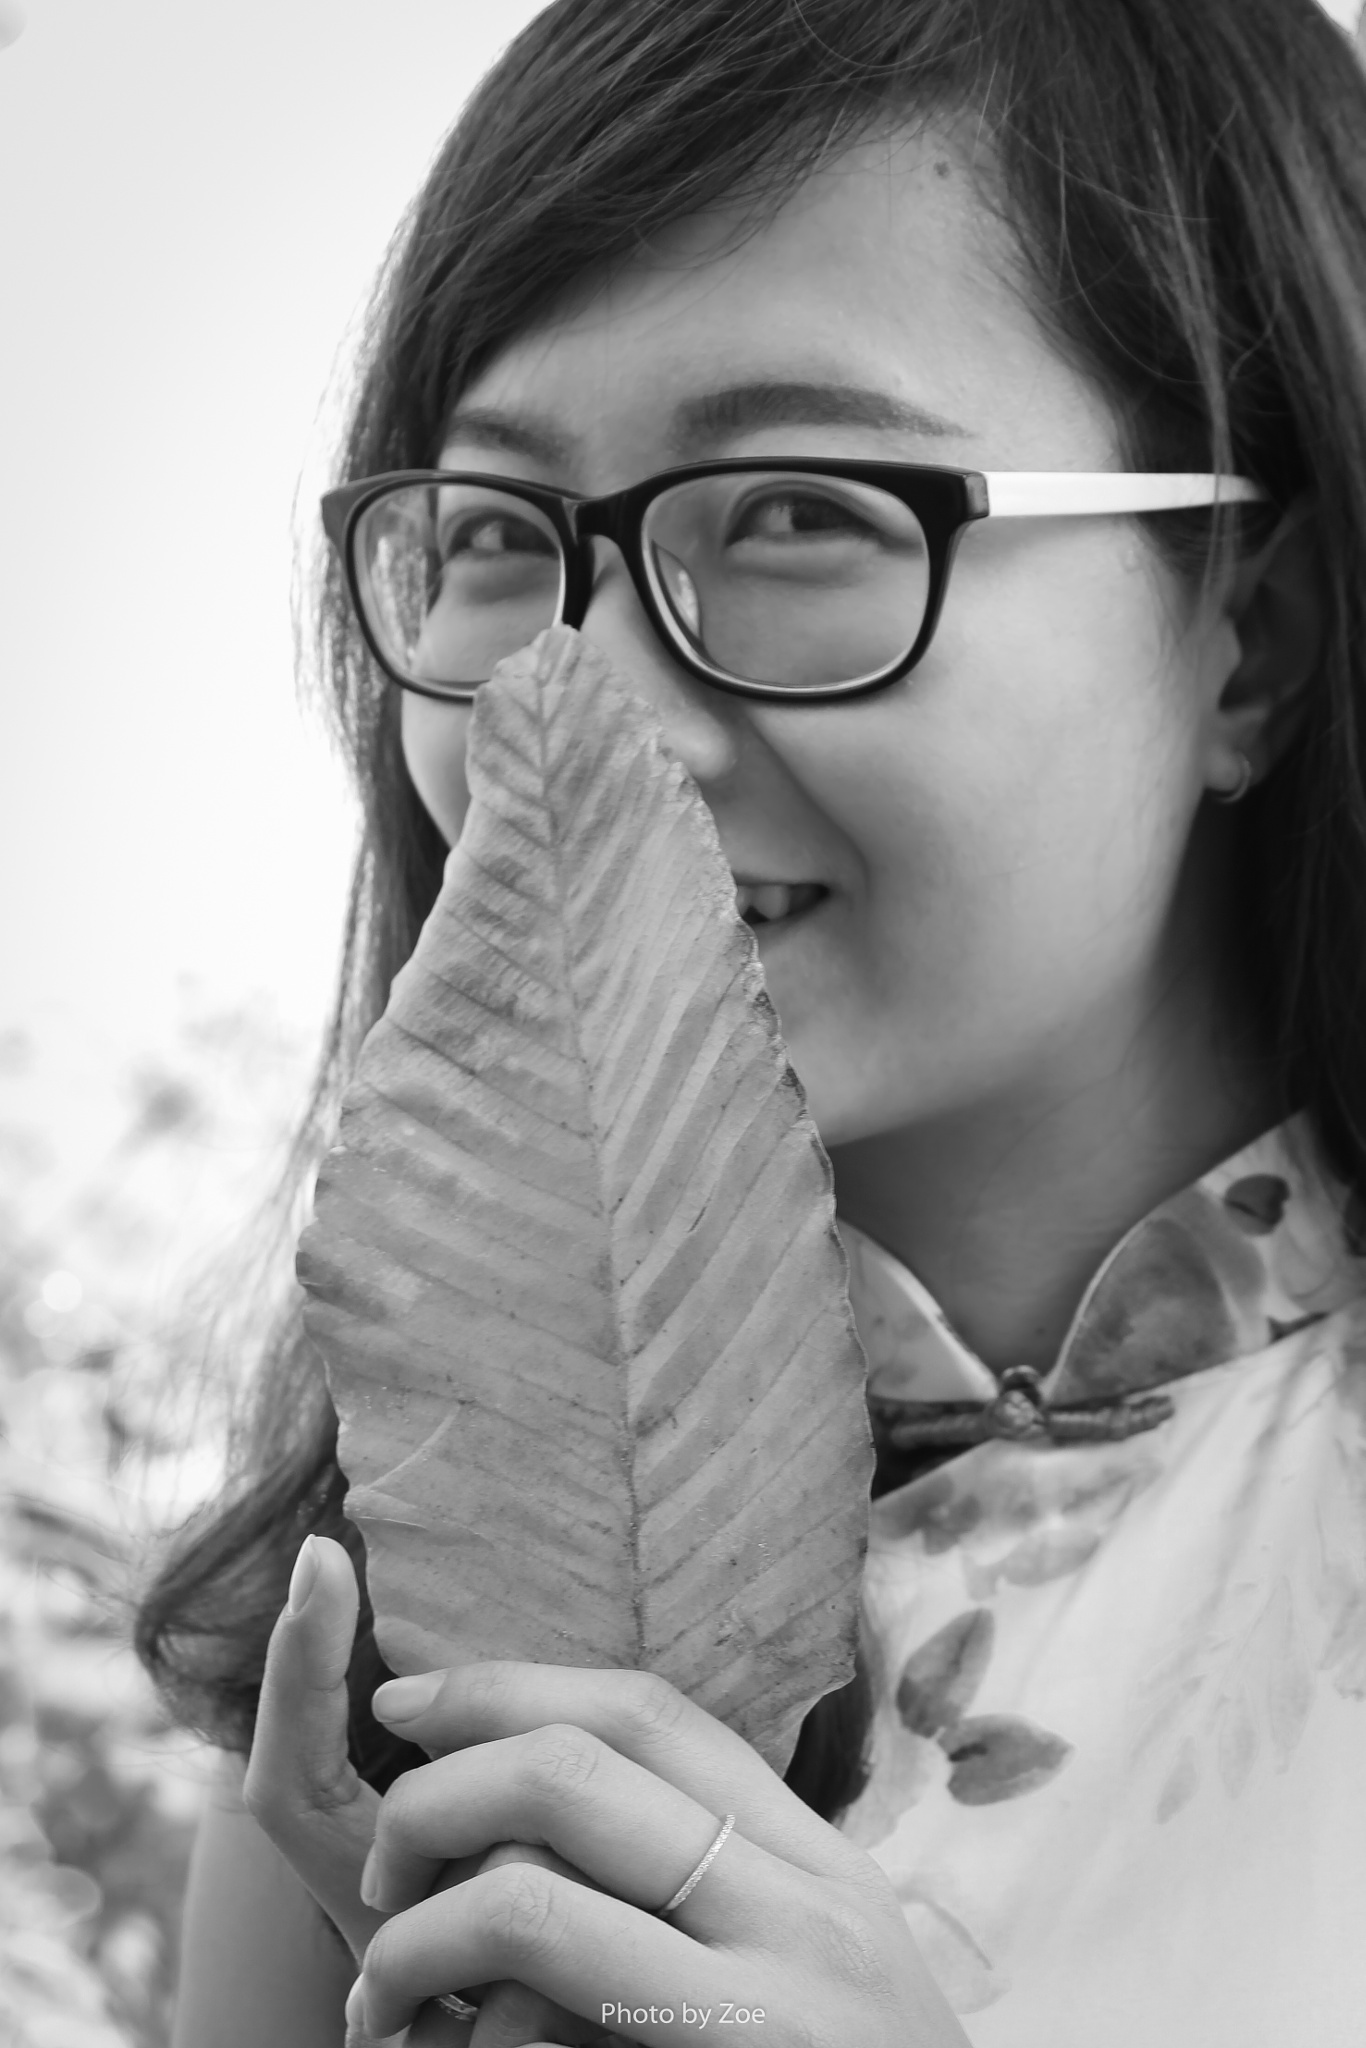 Leaf and she by Zoe